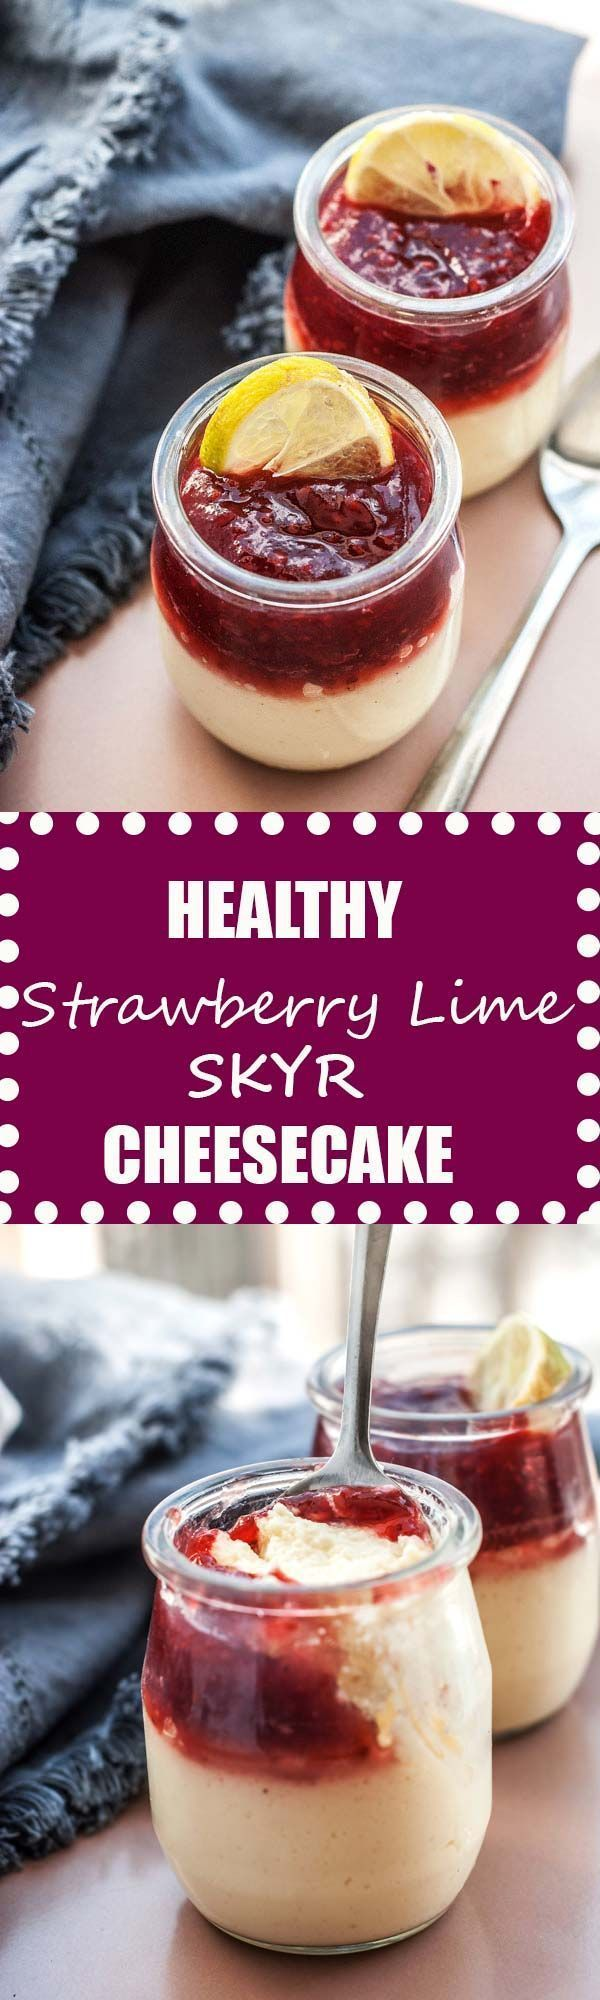 high protein breakfast cheesecake! Made with Skyr (or greek yogurt) and way less sugar but tastes just like light and fluffy cheesecake! Perfect meal prep recipe for make ahead breakfasts all summer long